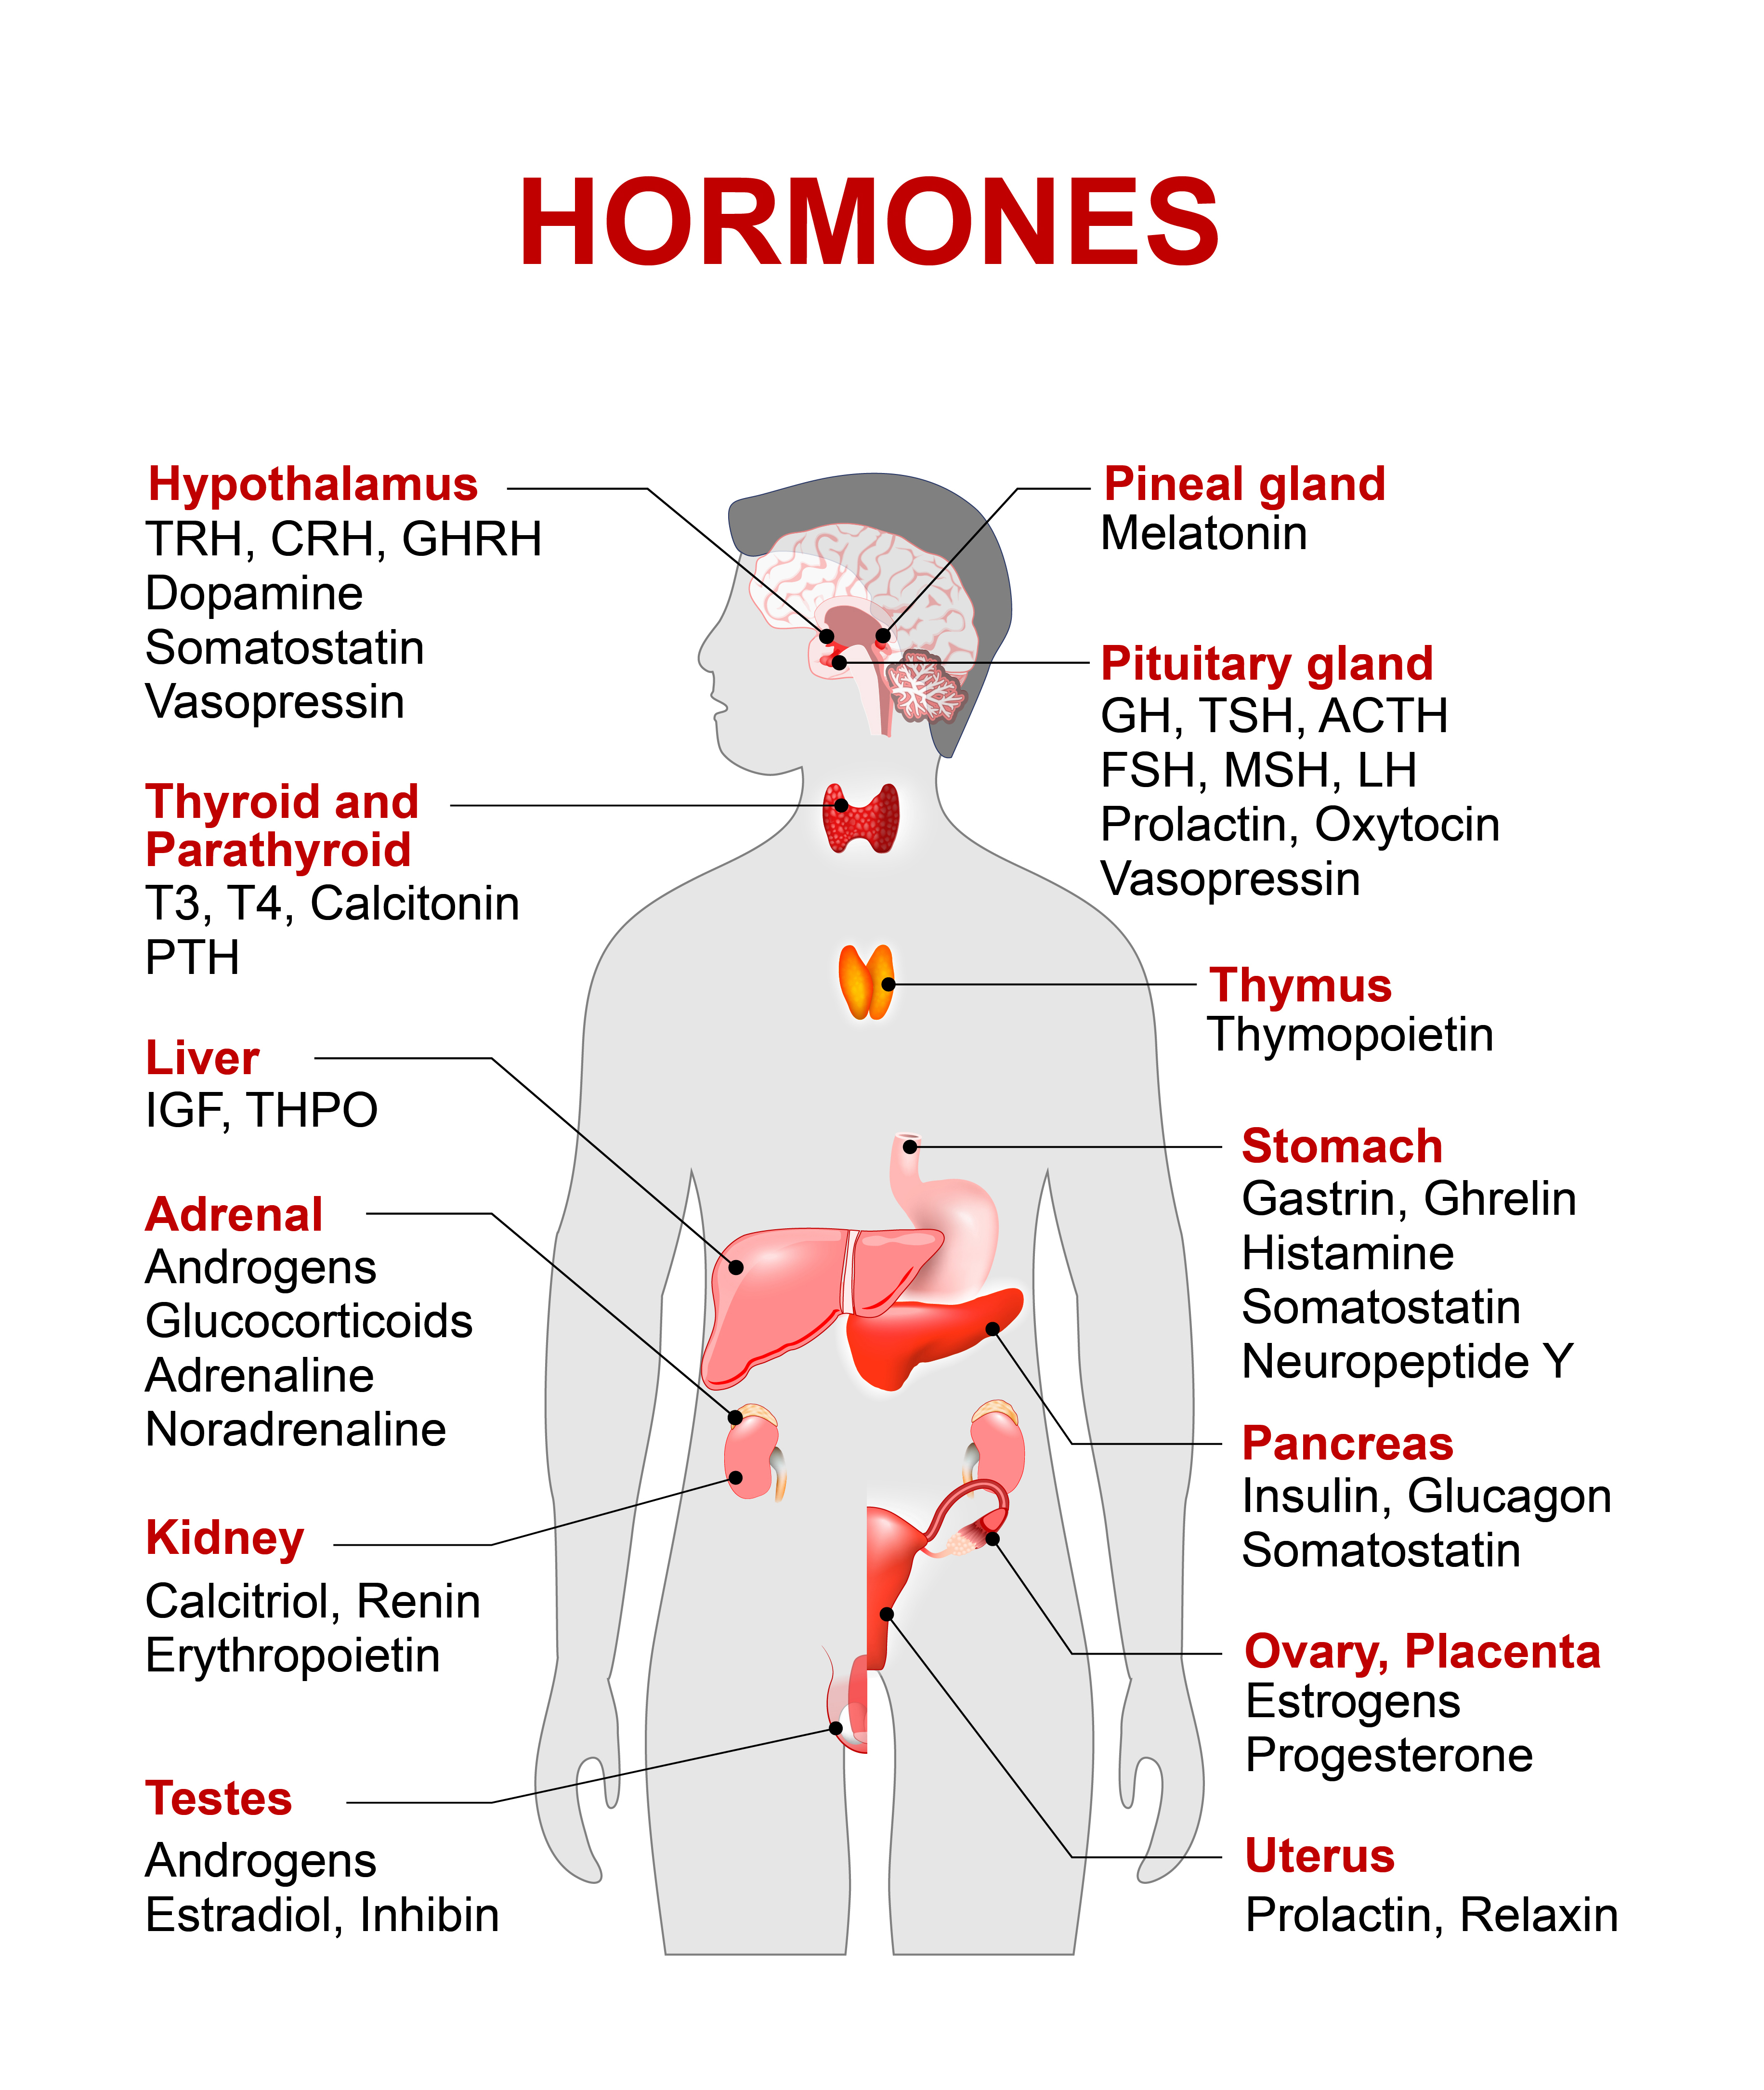 You have to be aware that the hormonal system is probably the most complicated one in our body. Just look how much of it is there!